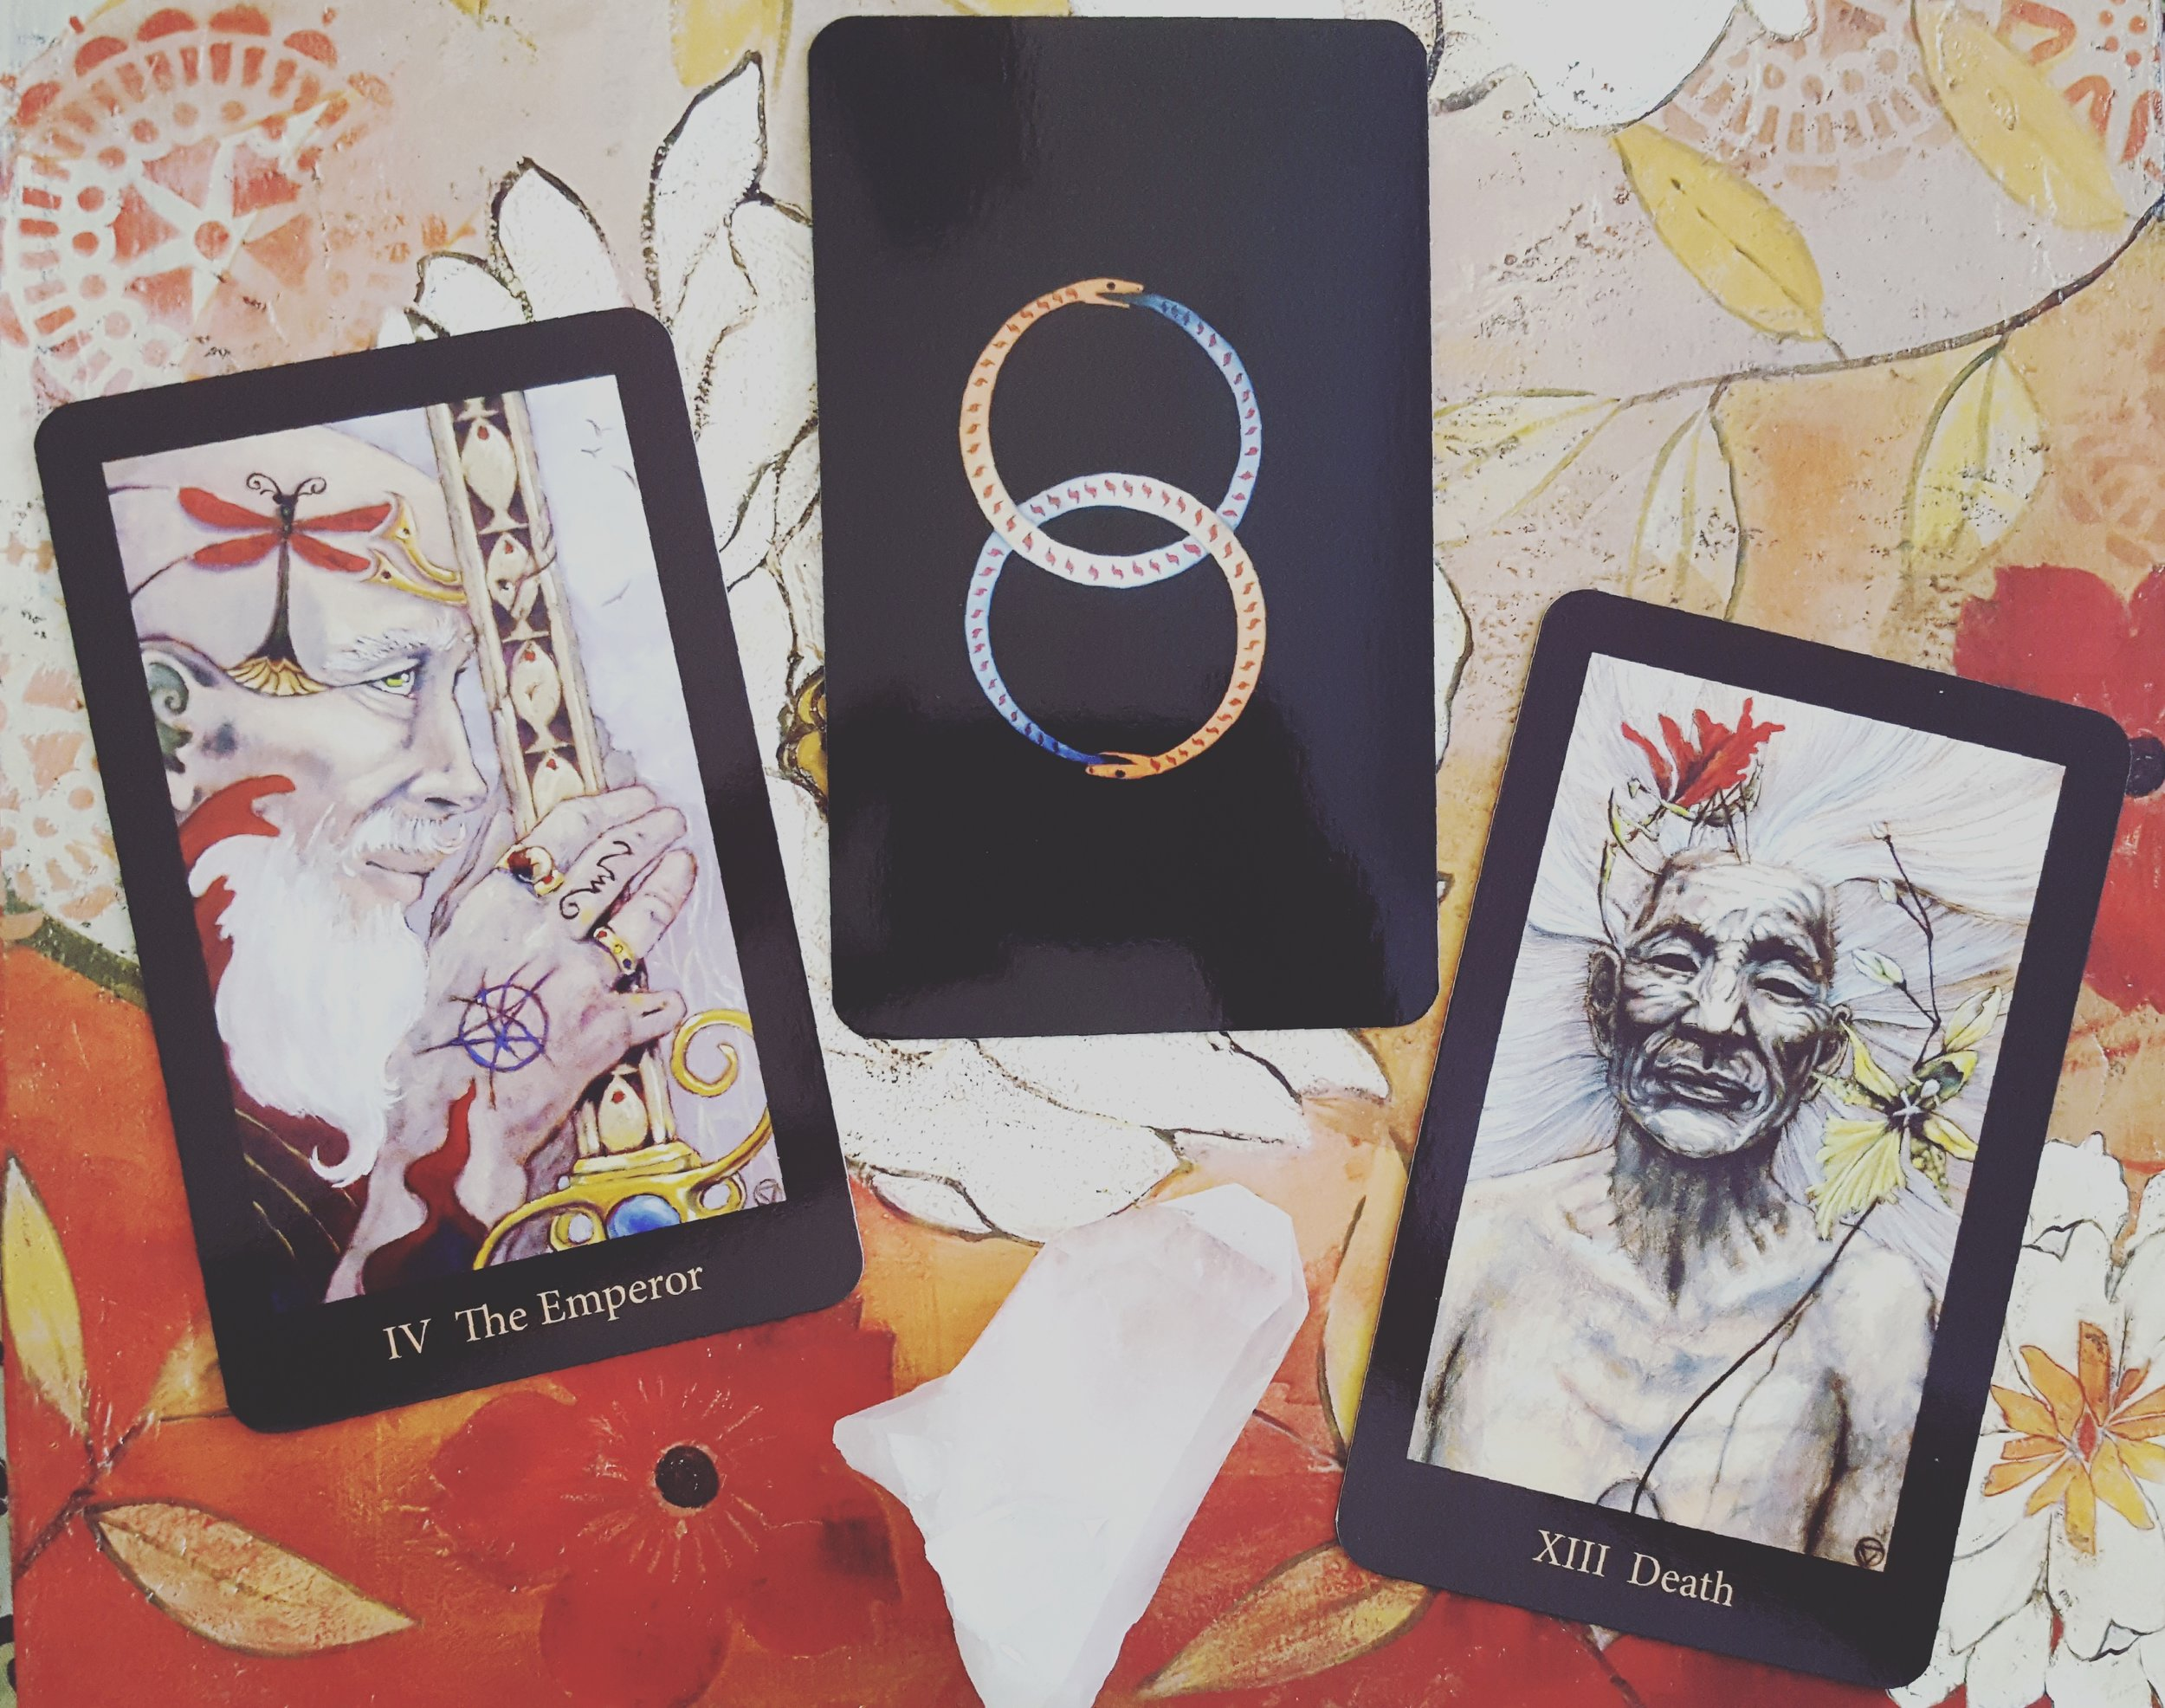 The first cards I look for in any deck, my birth cards, and the lovely twin ouroboros backing.